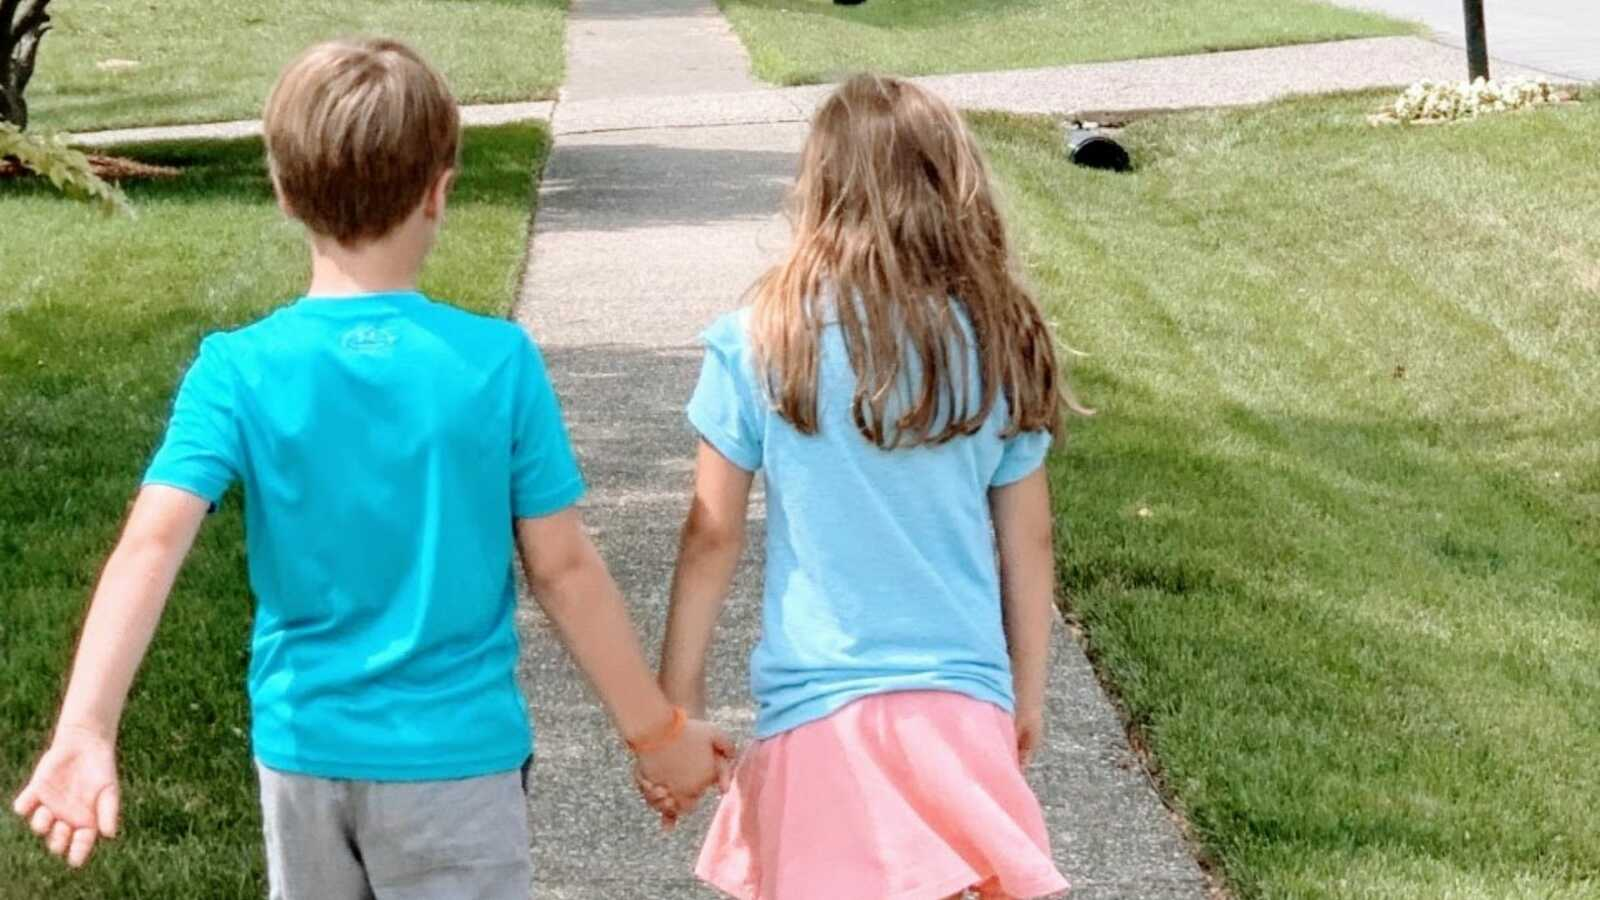 Foster mom takes photos of her kids walking hand-in-hand down the street in matching blue shirts